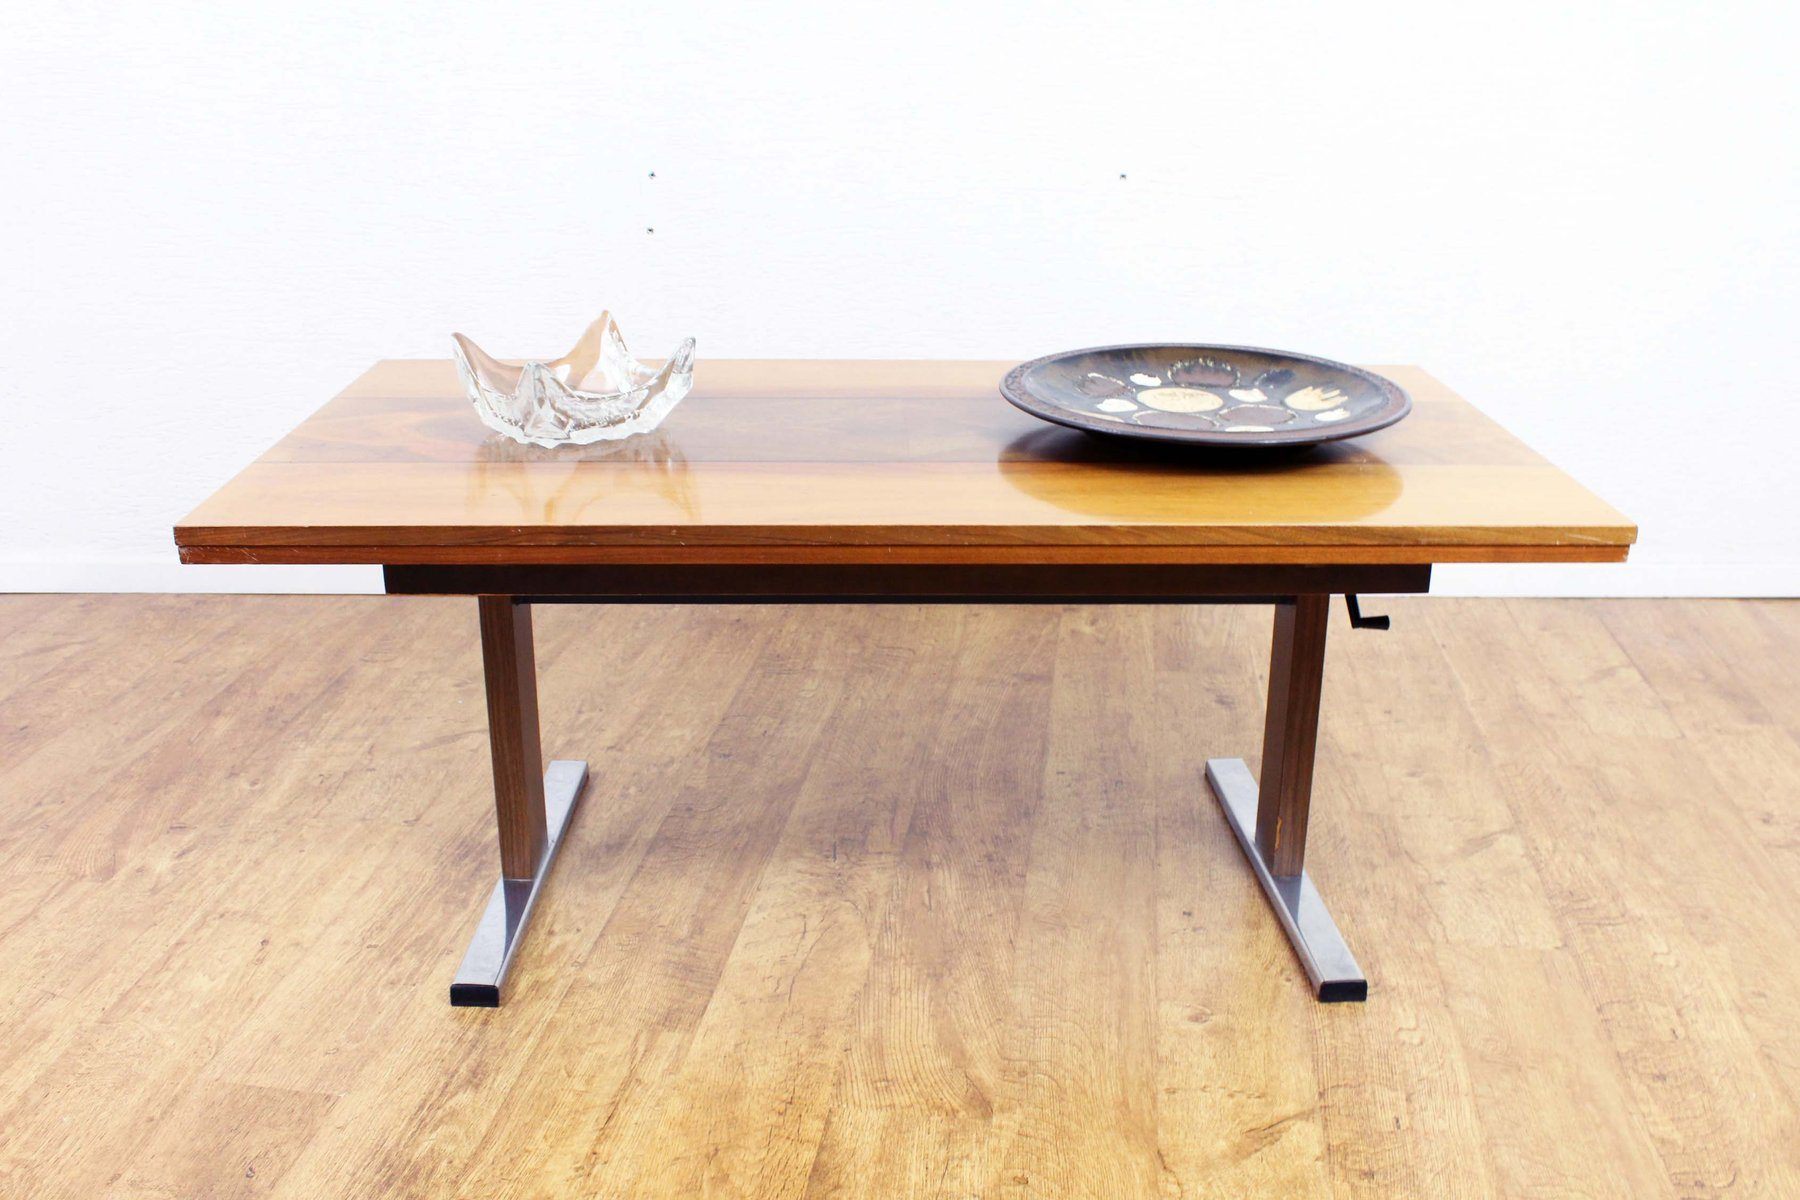 title | Adjustable Height Coffee Dining Table